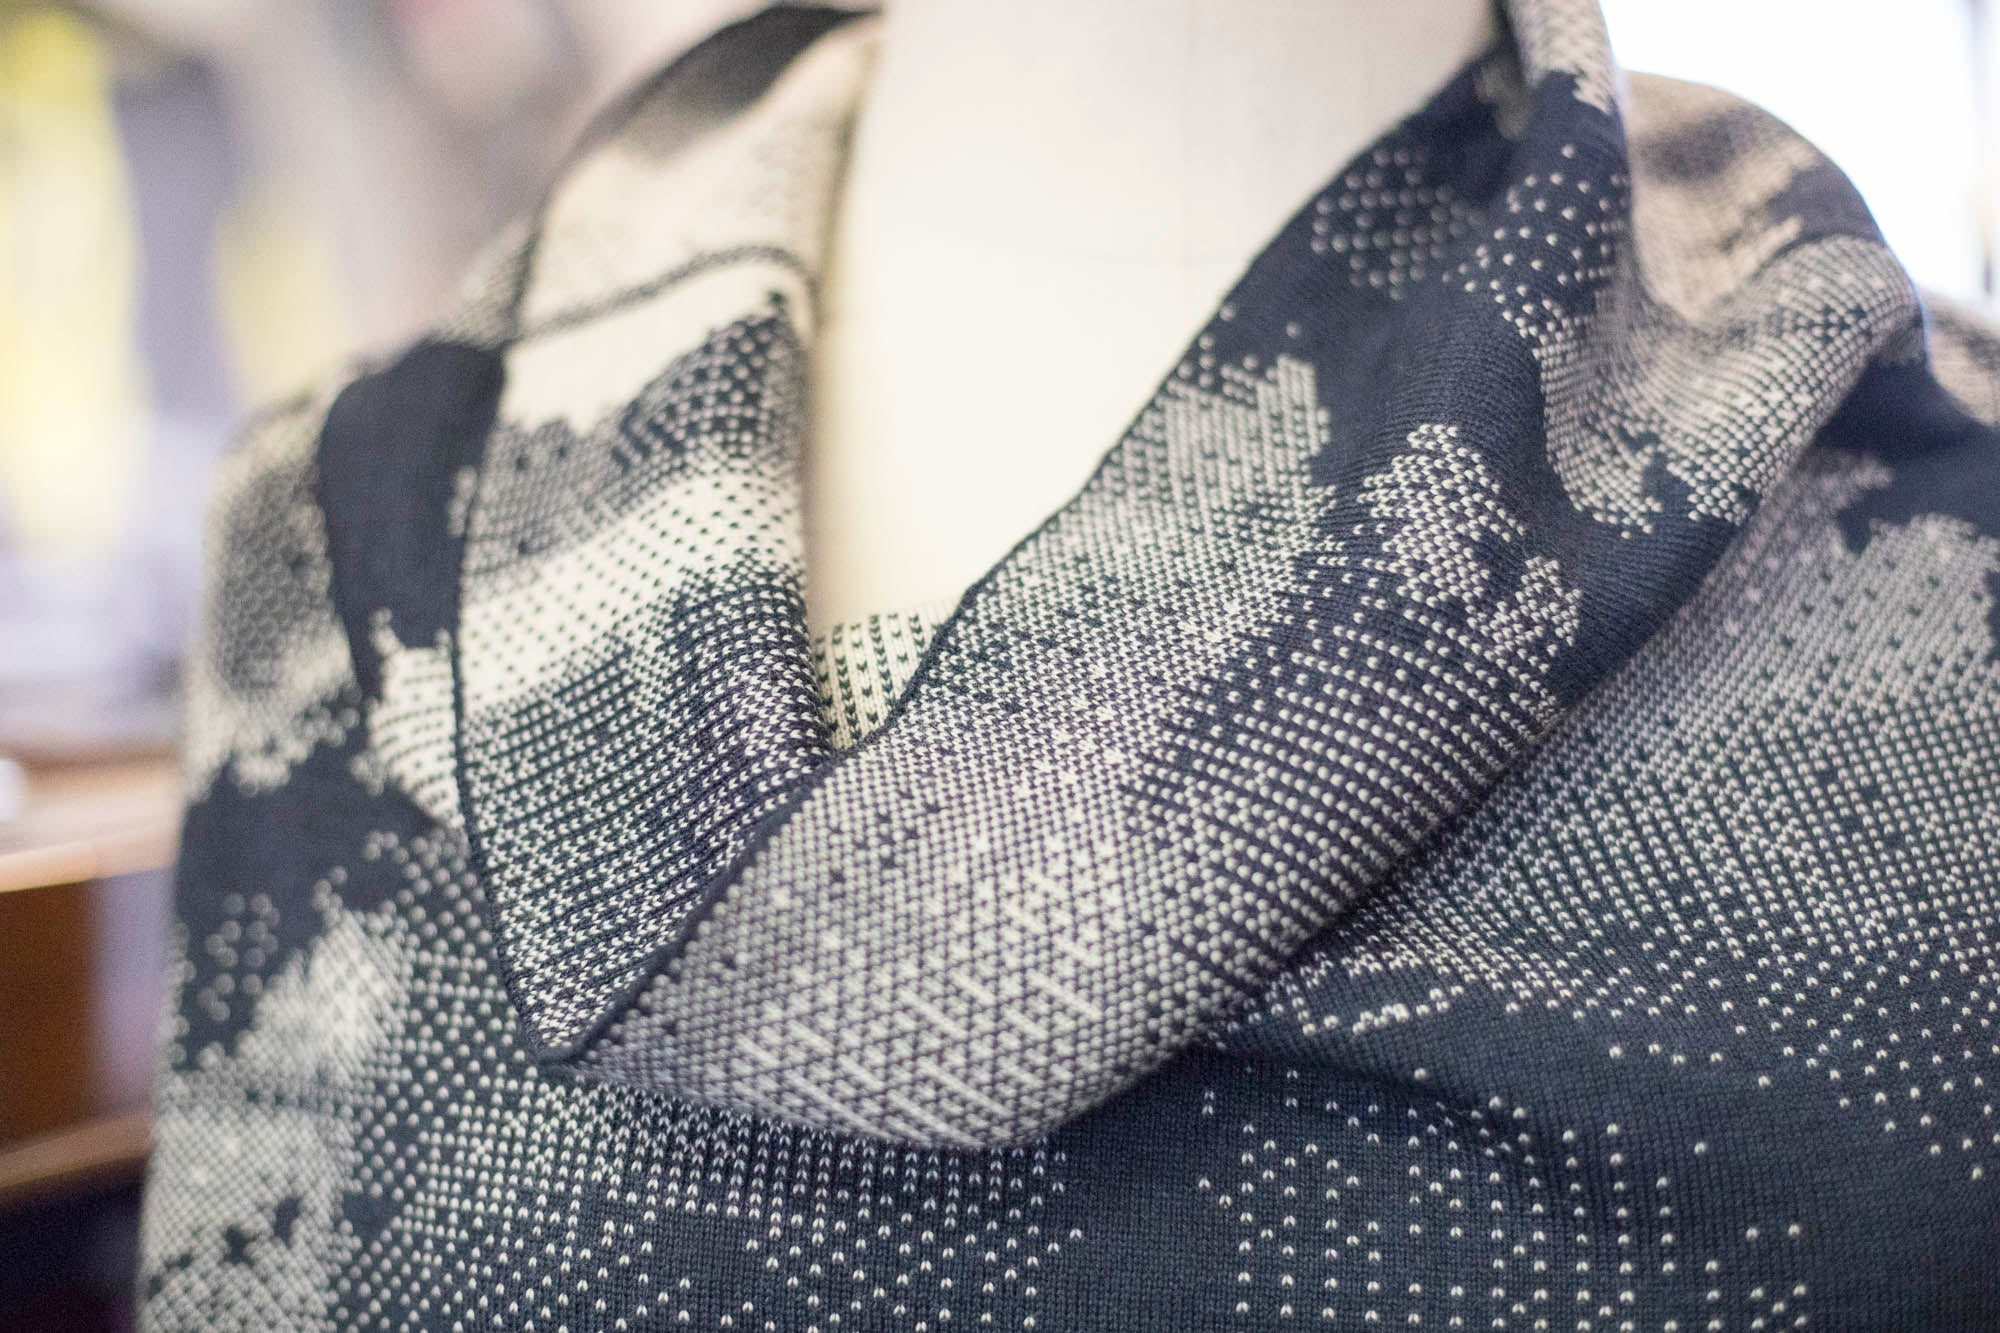 Detail of Rani jumper showing cowl neck and textile design